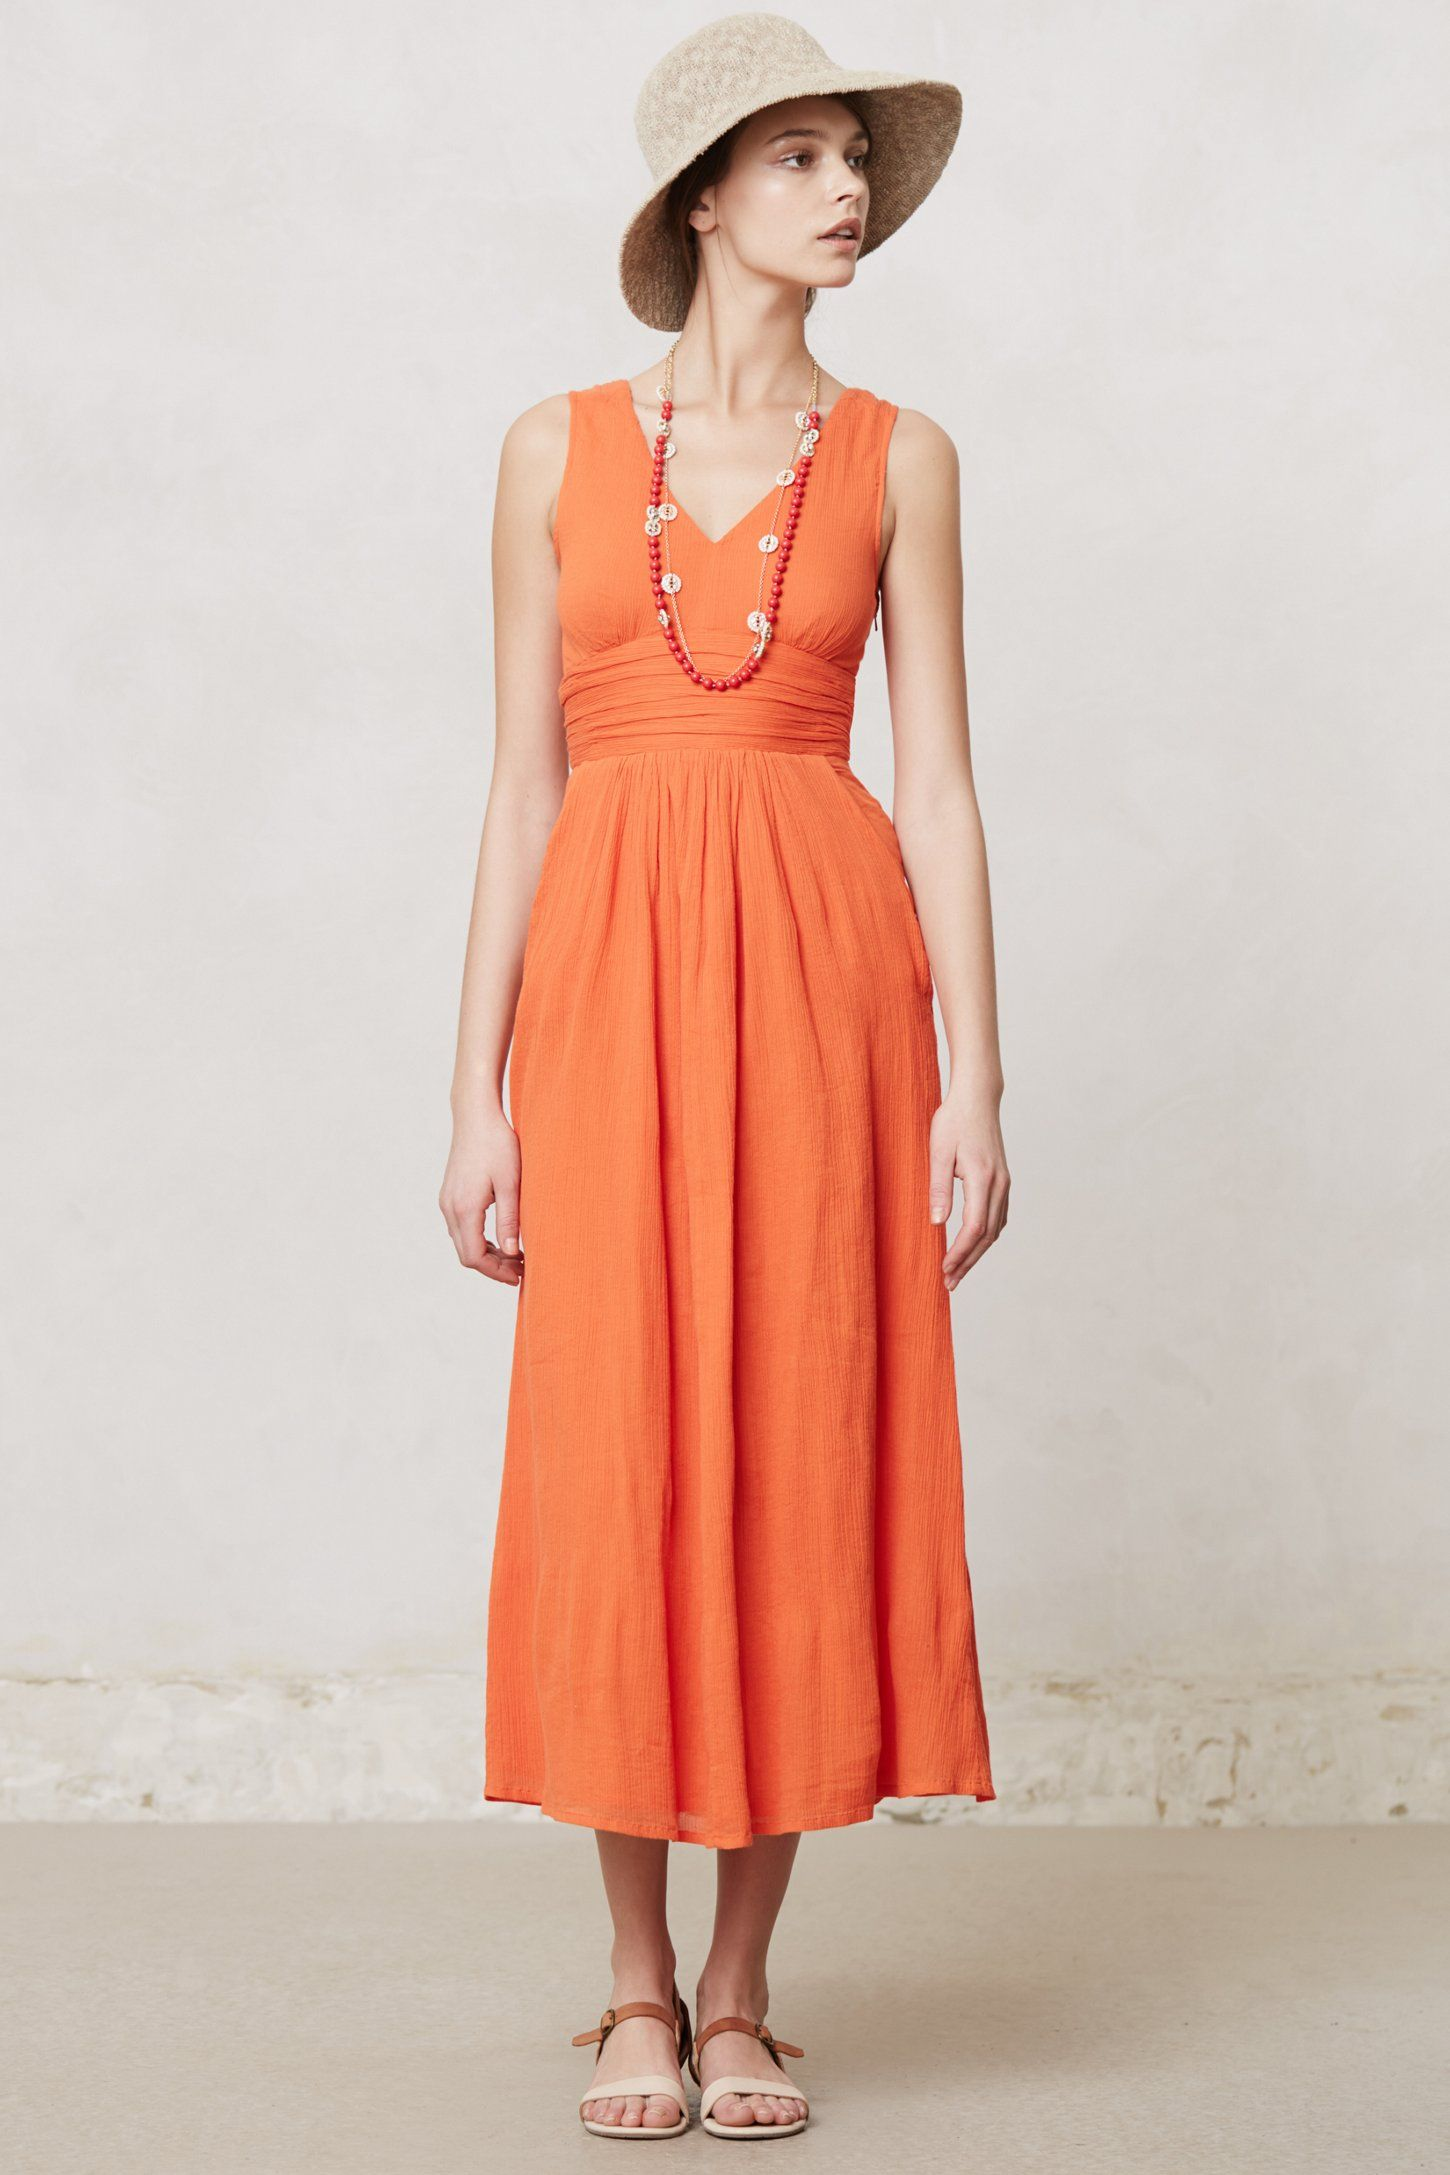 7d883979dacad freshly cut - Sale - Anthropologie.com | Wear It | Summer dresses ...